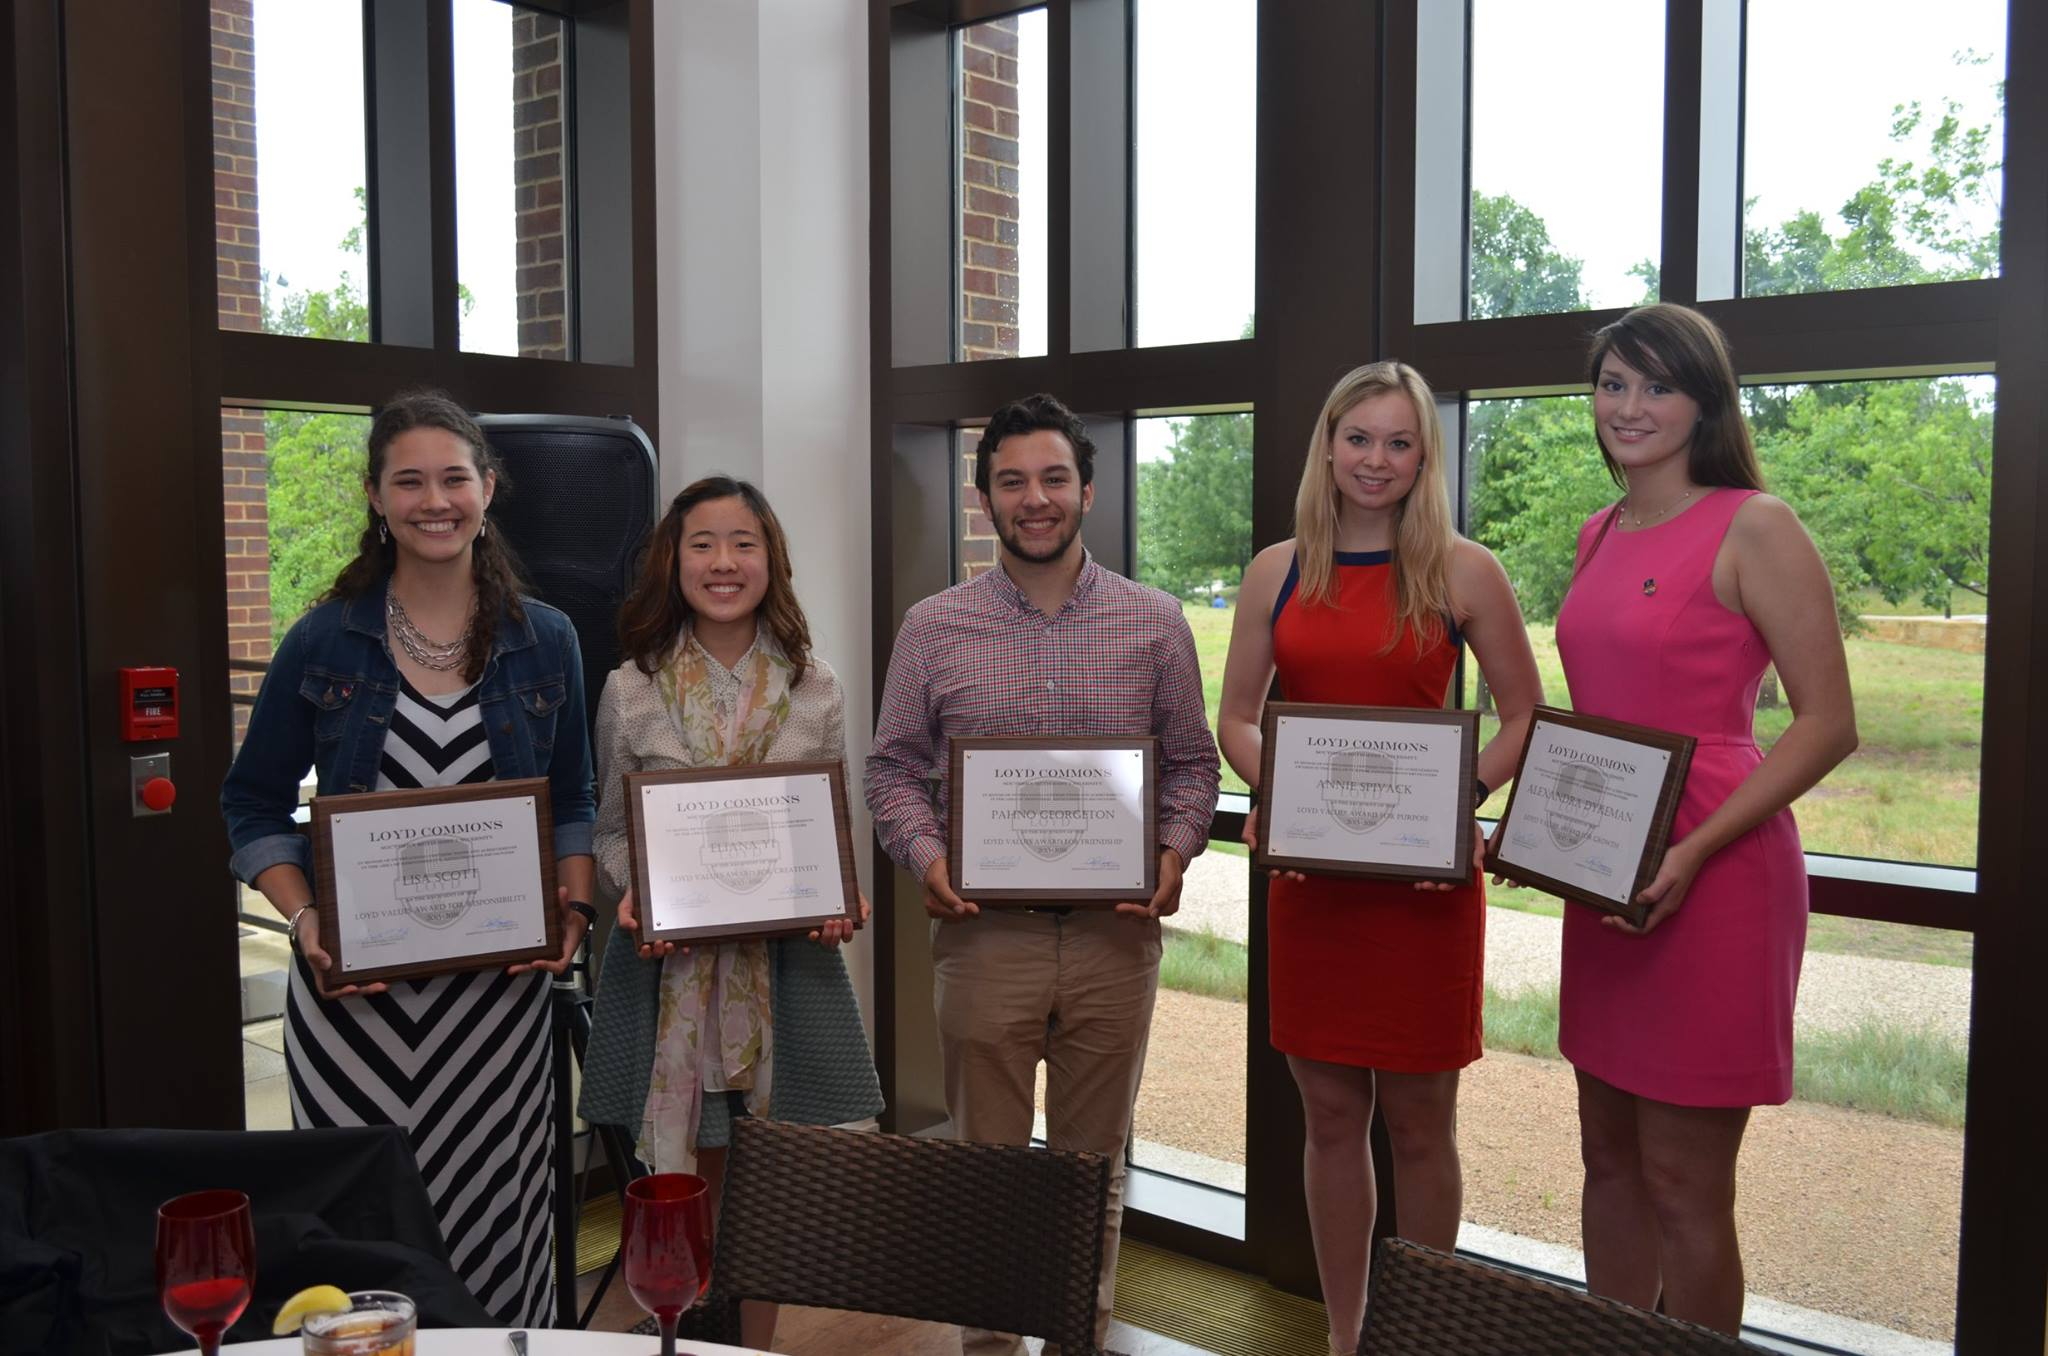 Our 2015-2016 Values Award Recipients (L to R) - Lisa Scott, Eliana Yi, Pahno Georgeton, Annie Spivack, Alexandra Dykeman